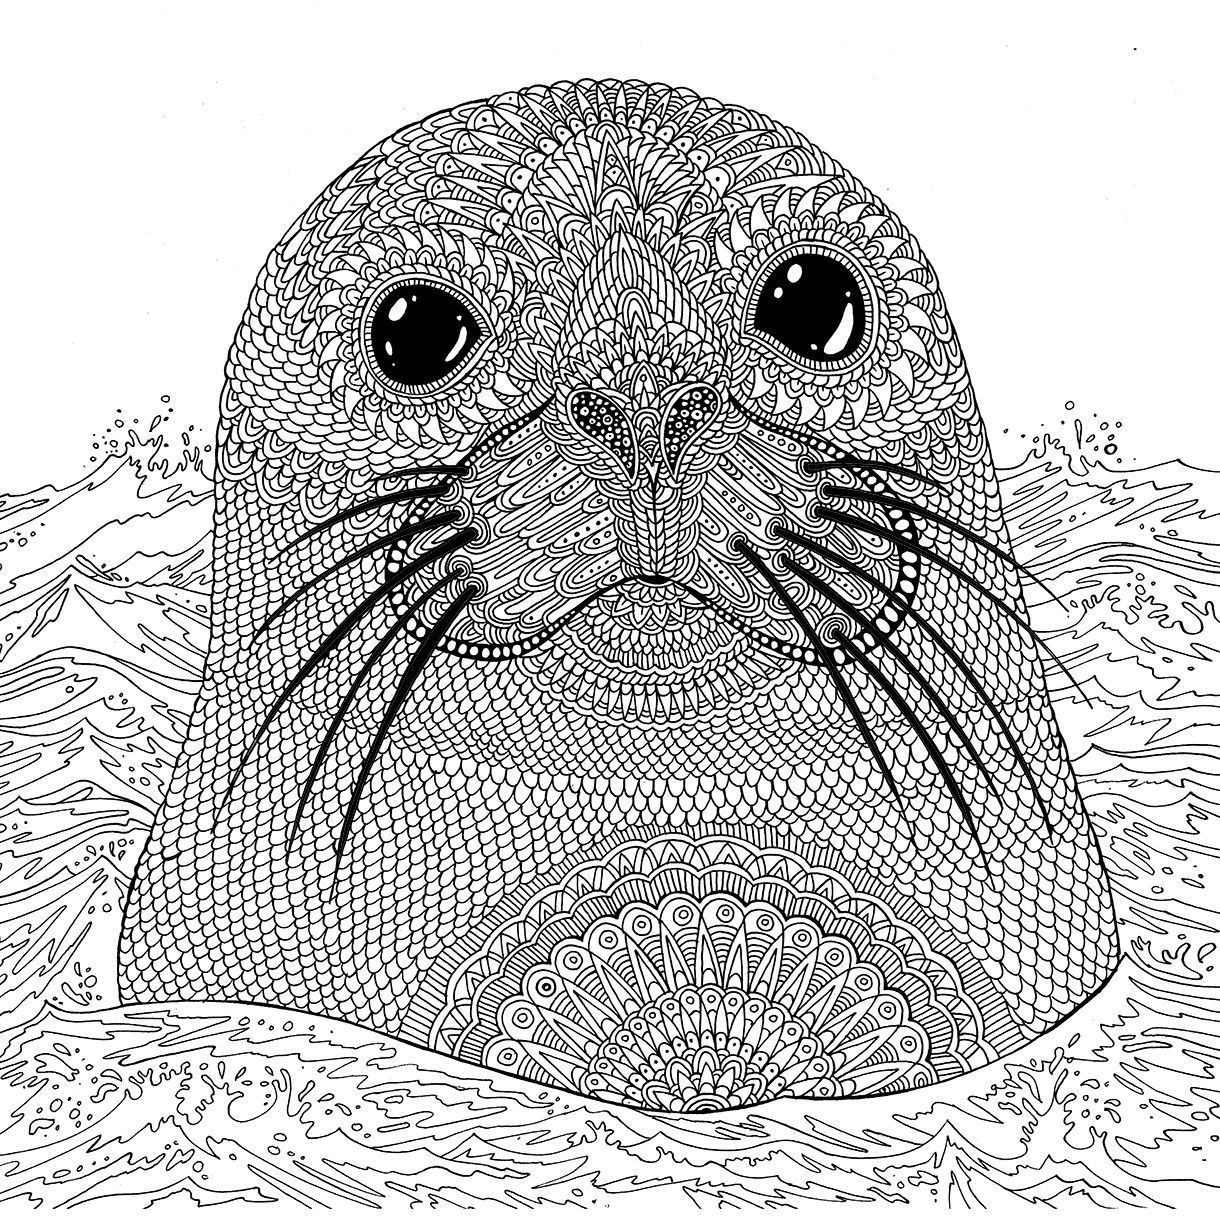 water animal coloring pages seal the aquarium colouring book richard merritt seal pages animal coloring water